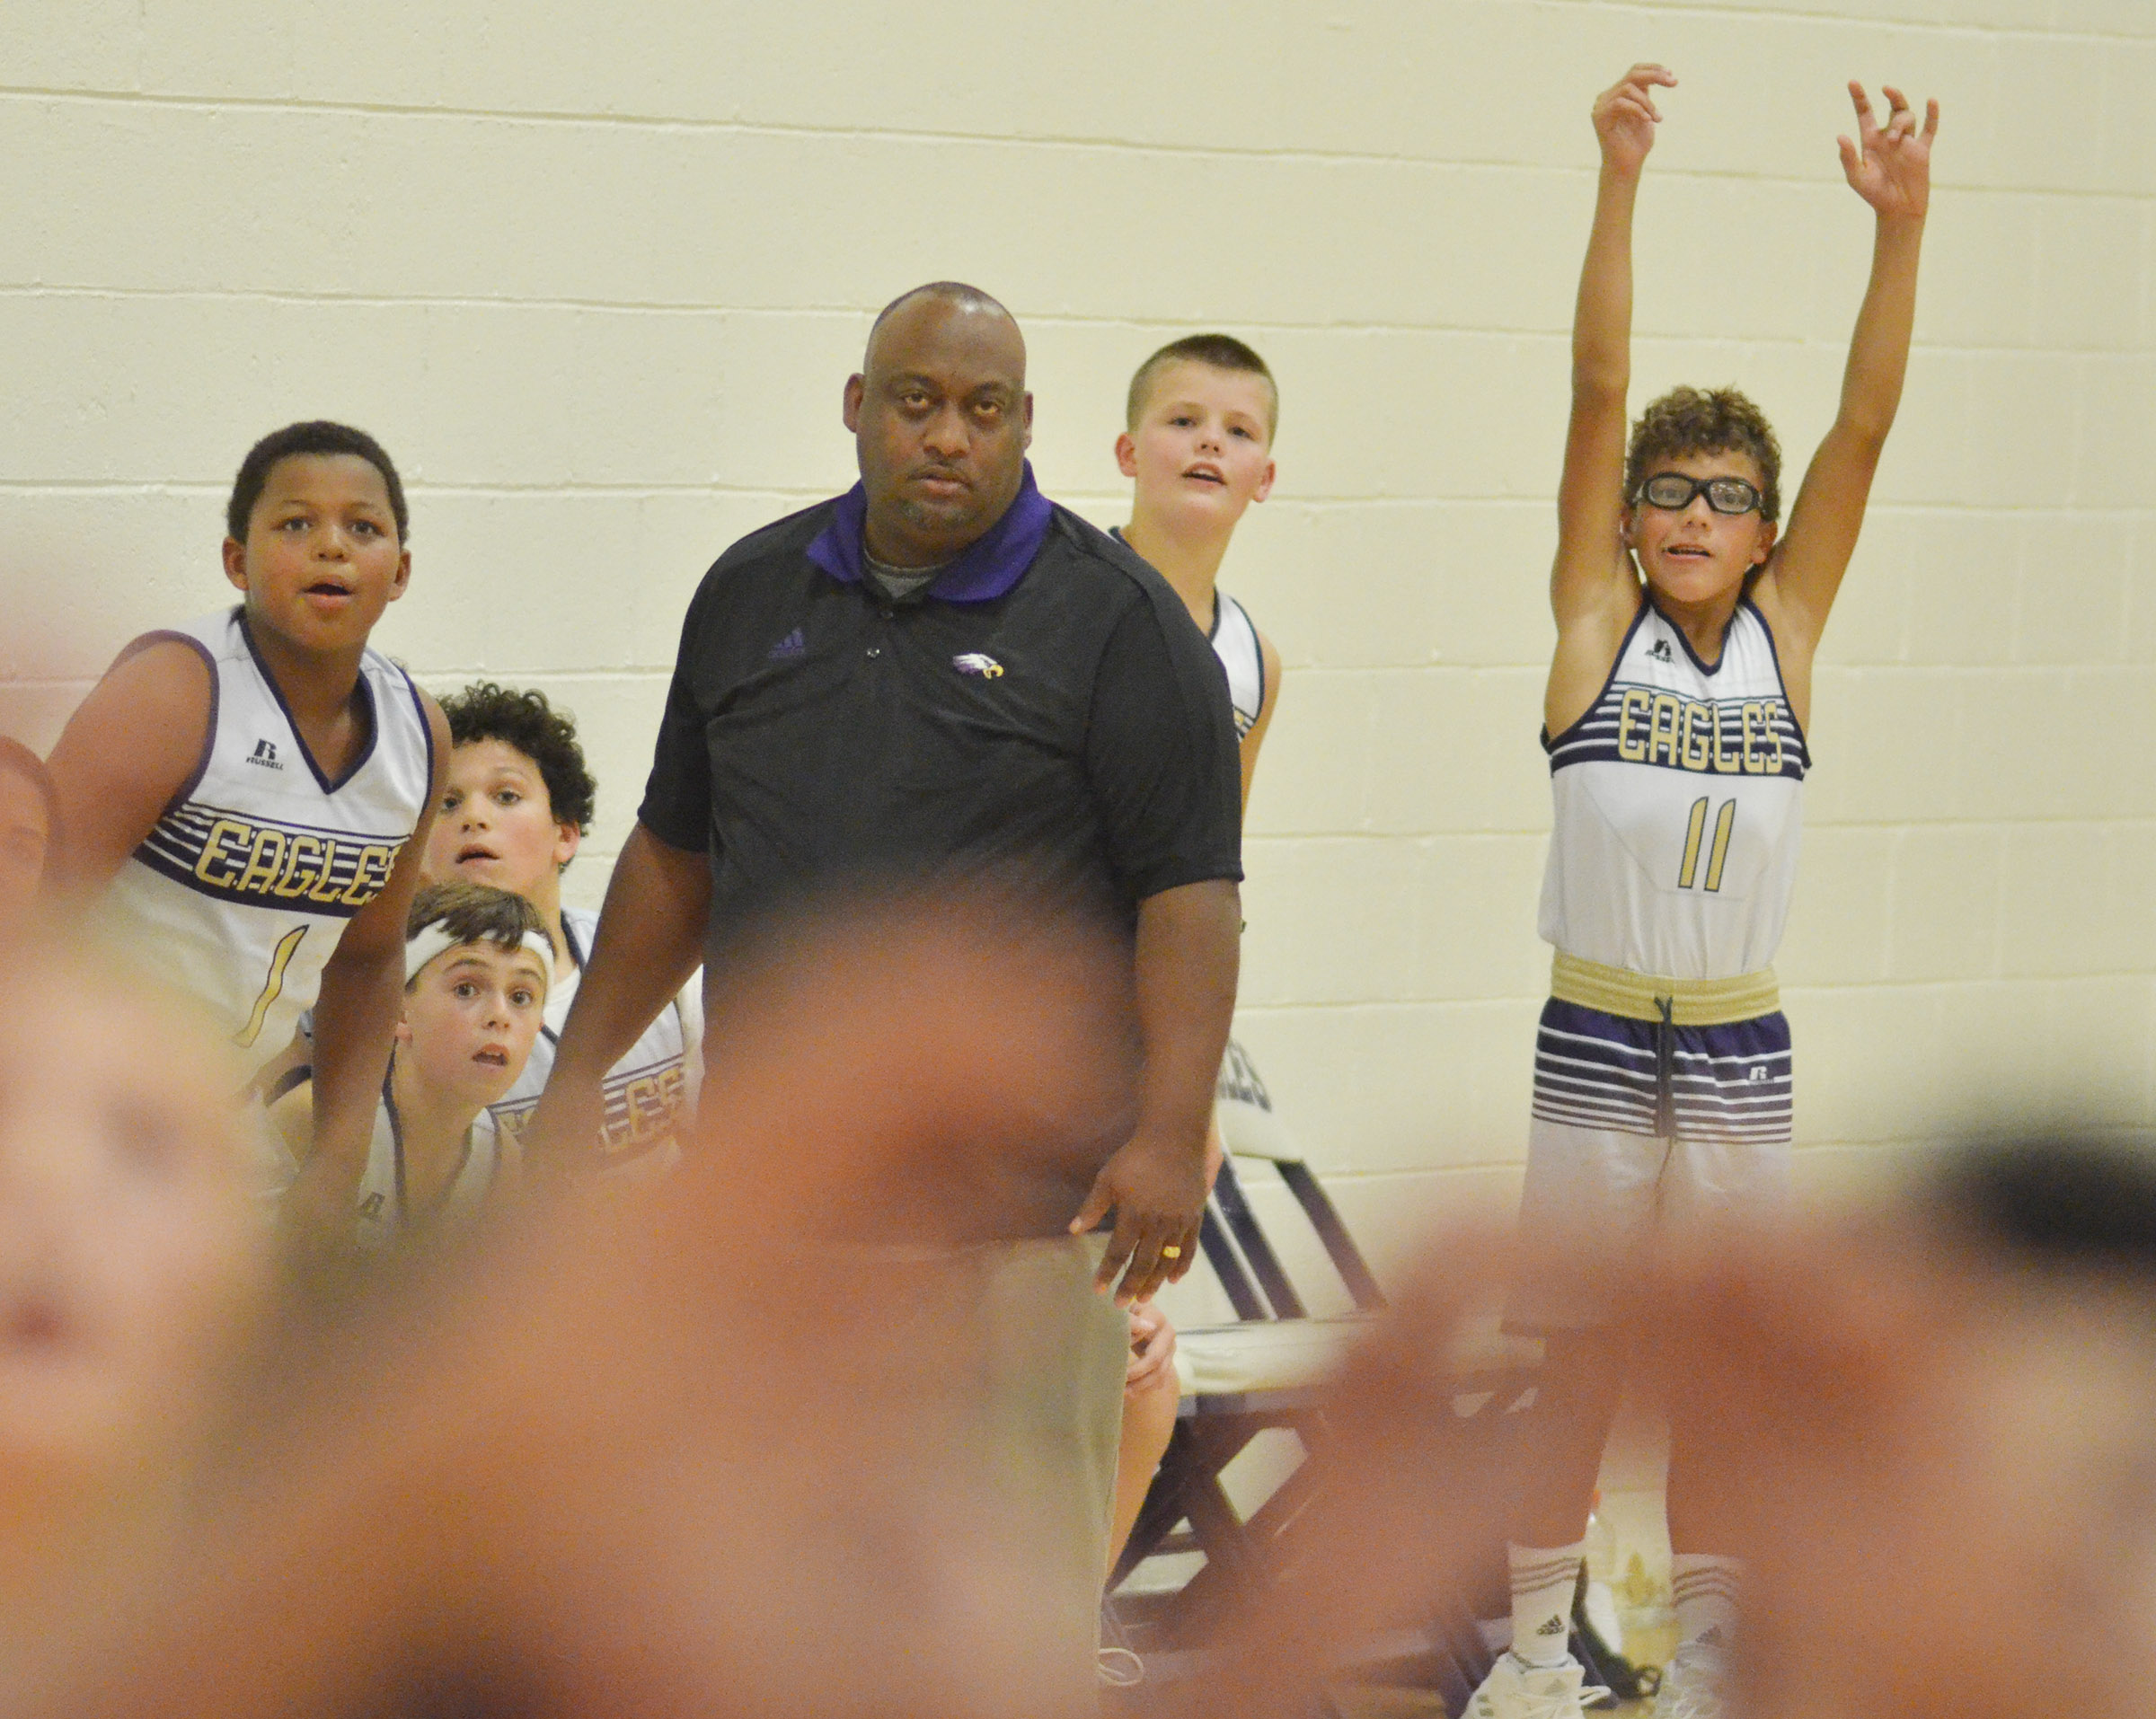 CMS boys' basketball head coach Joseph Taylor and his players watch a play.